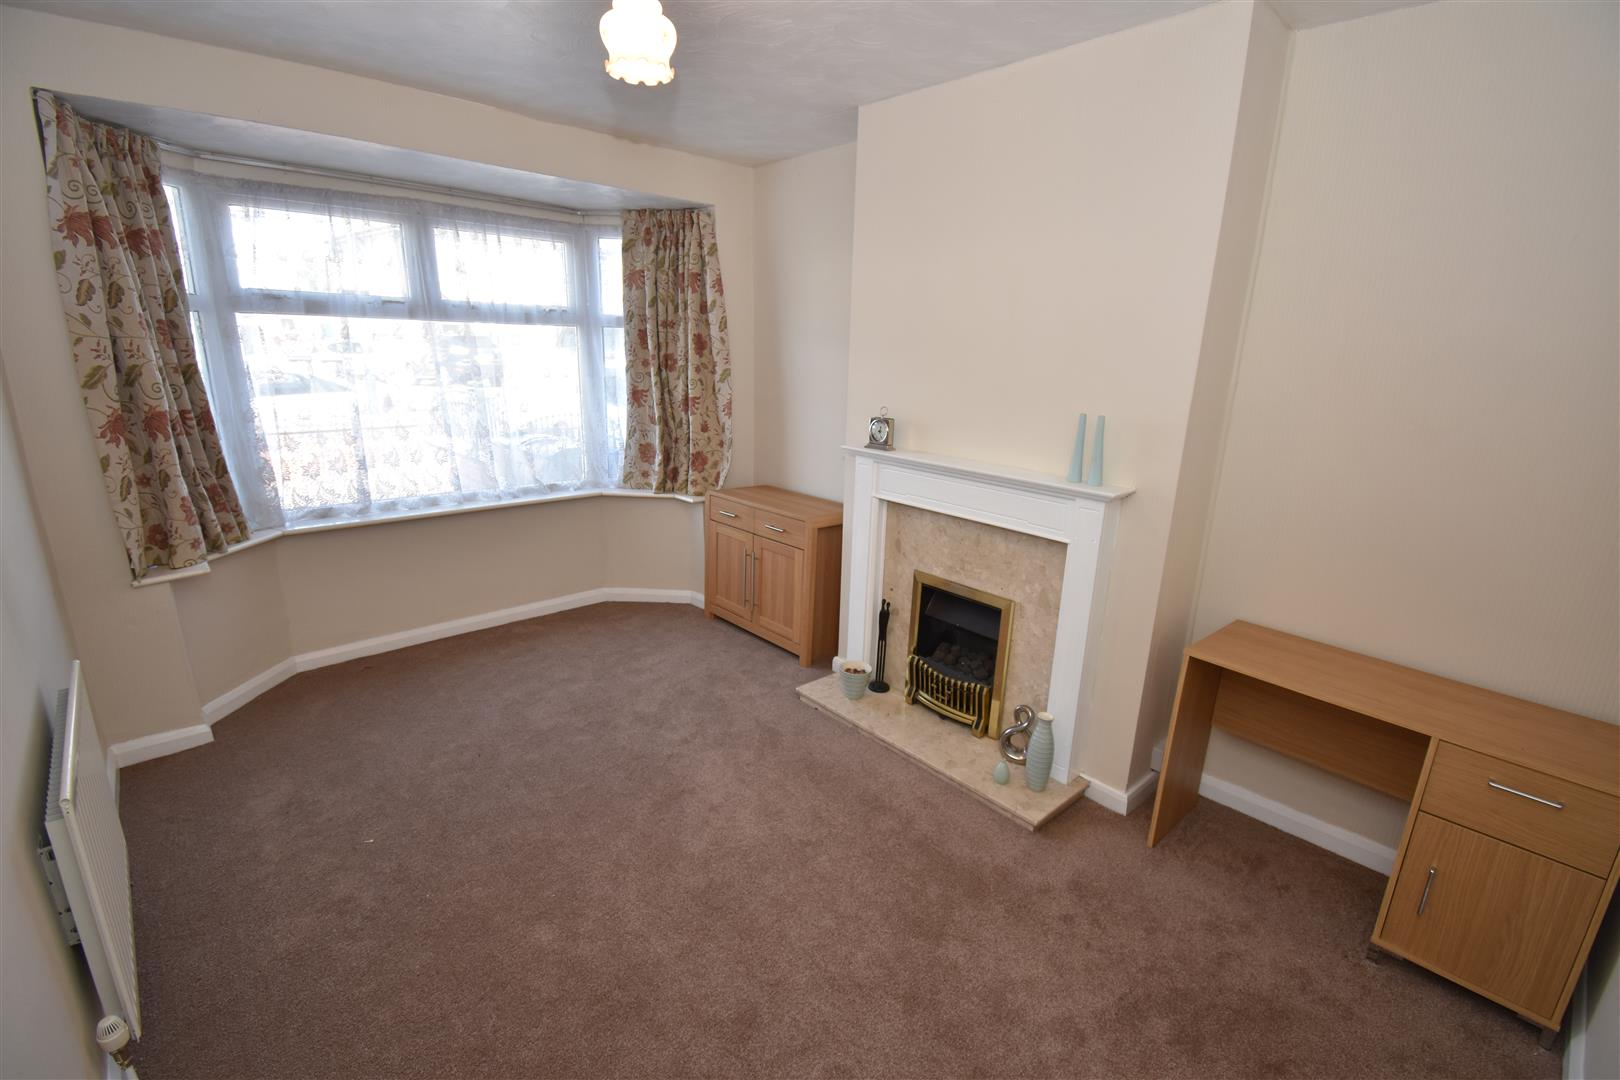 3 bed house for sale in Mickleover Road, Ward End, Birmingham 2